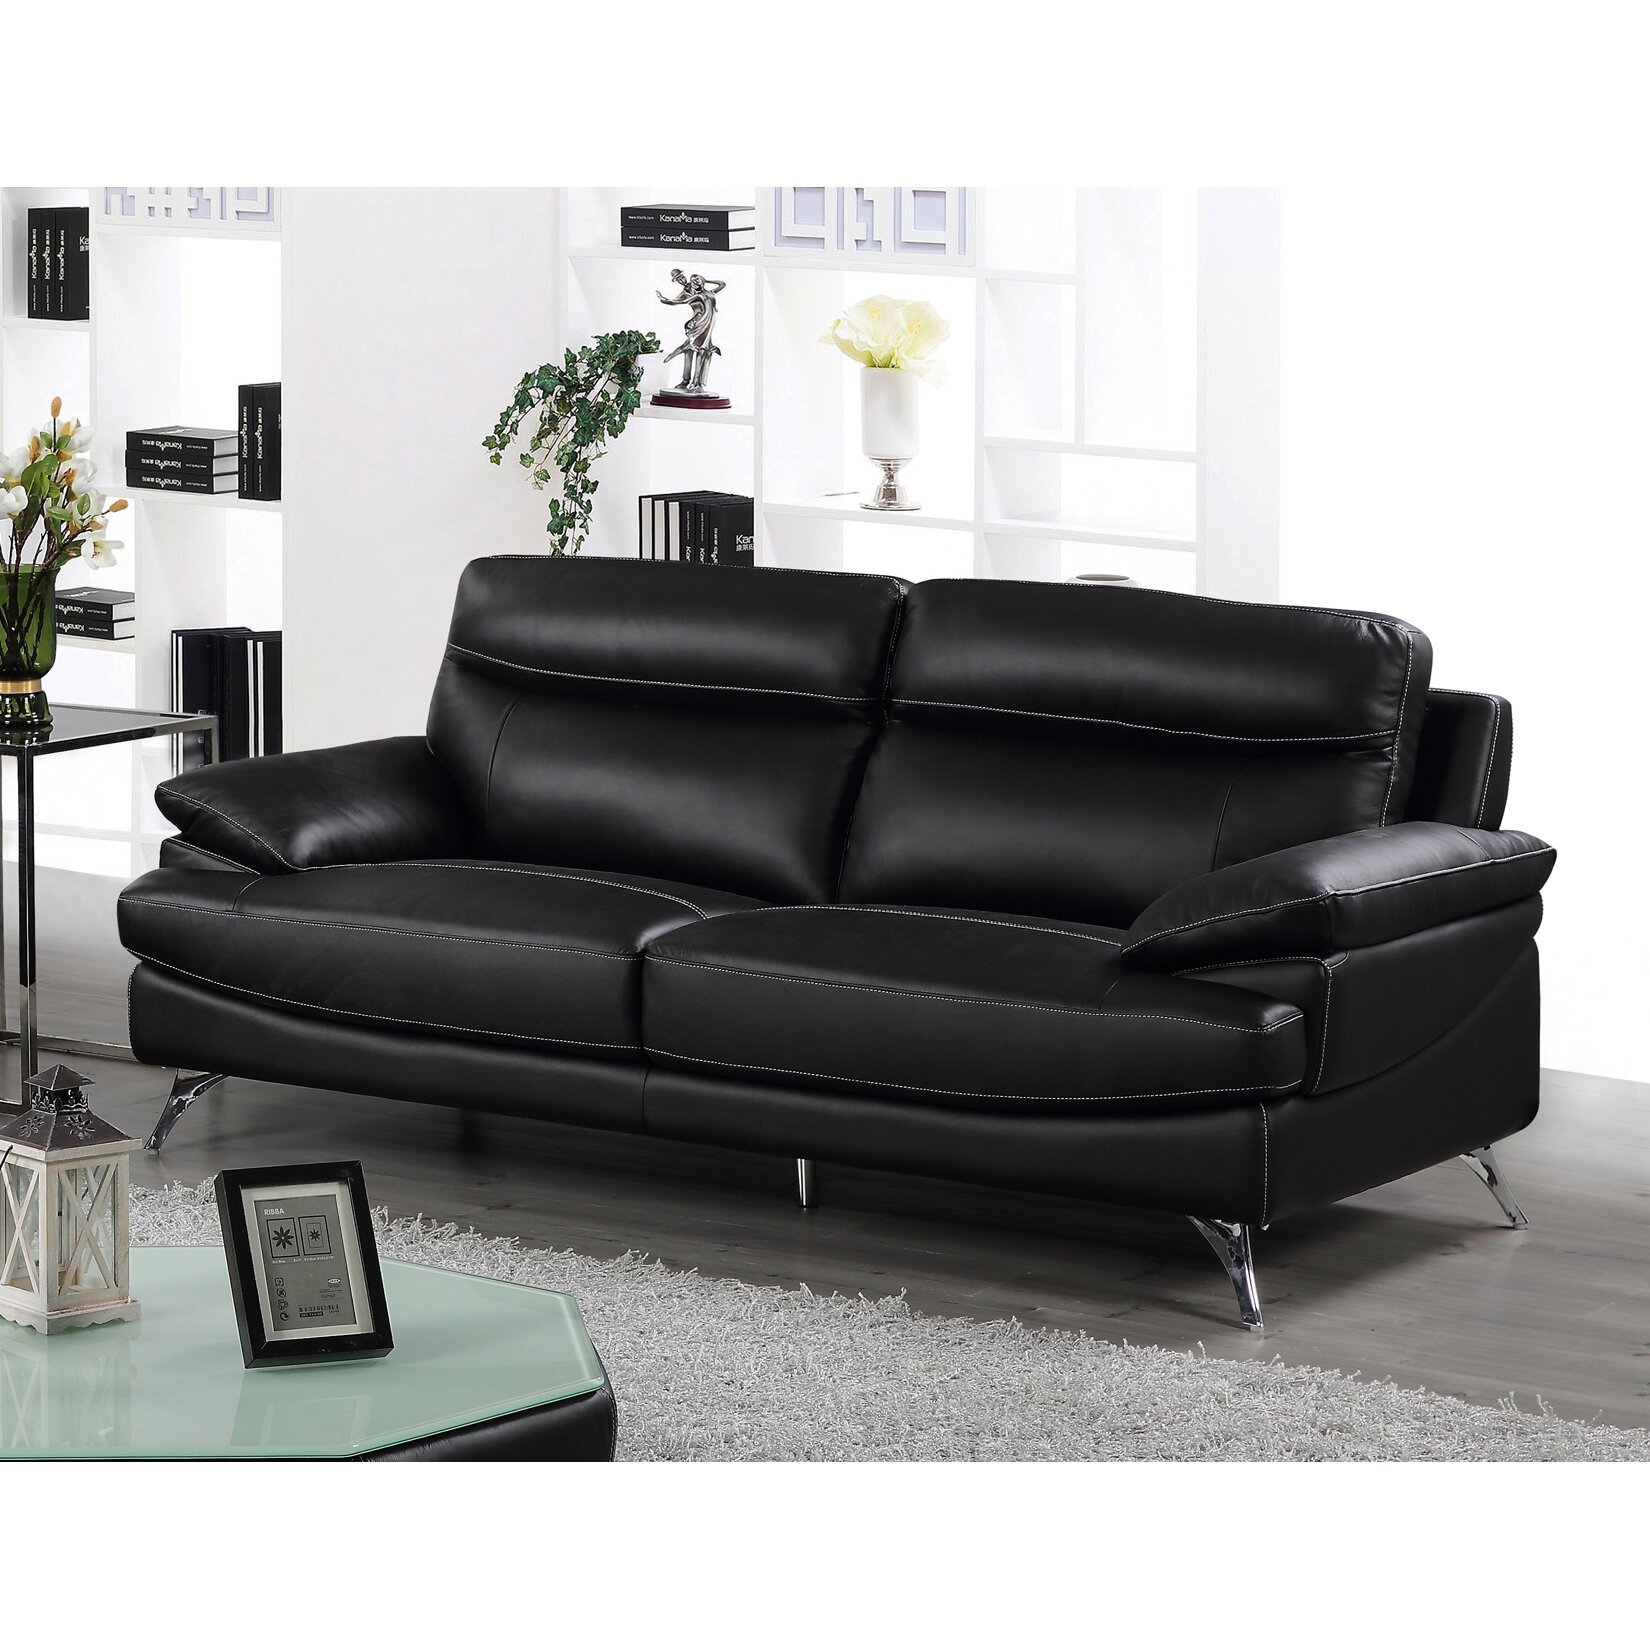 Best quality furniture leather sofa wayfair for Best quality furniture